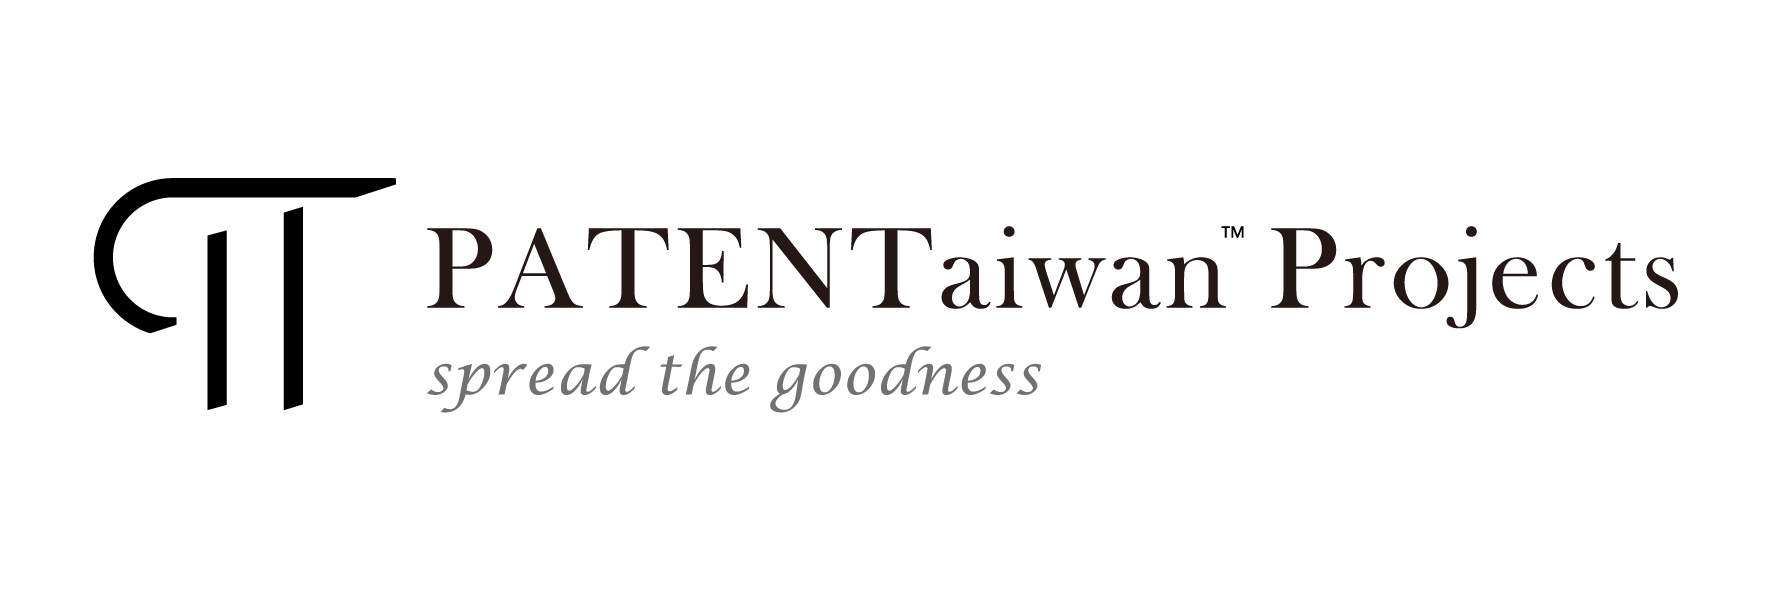 PATENTaiwan Projects